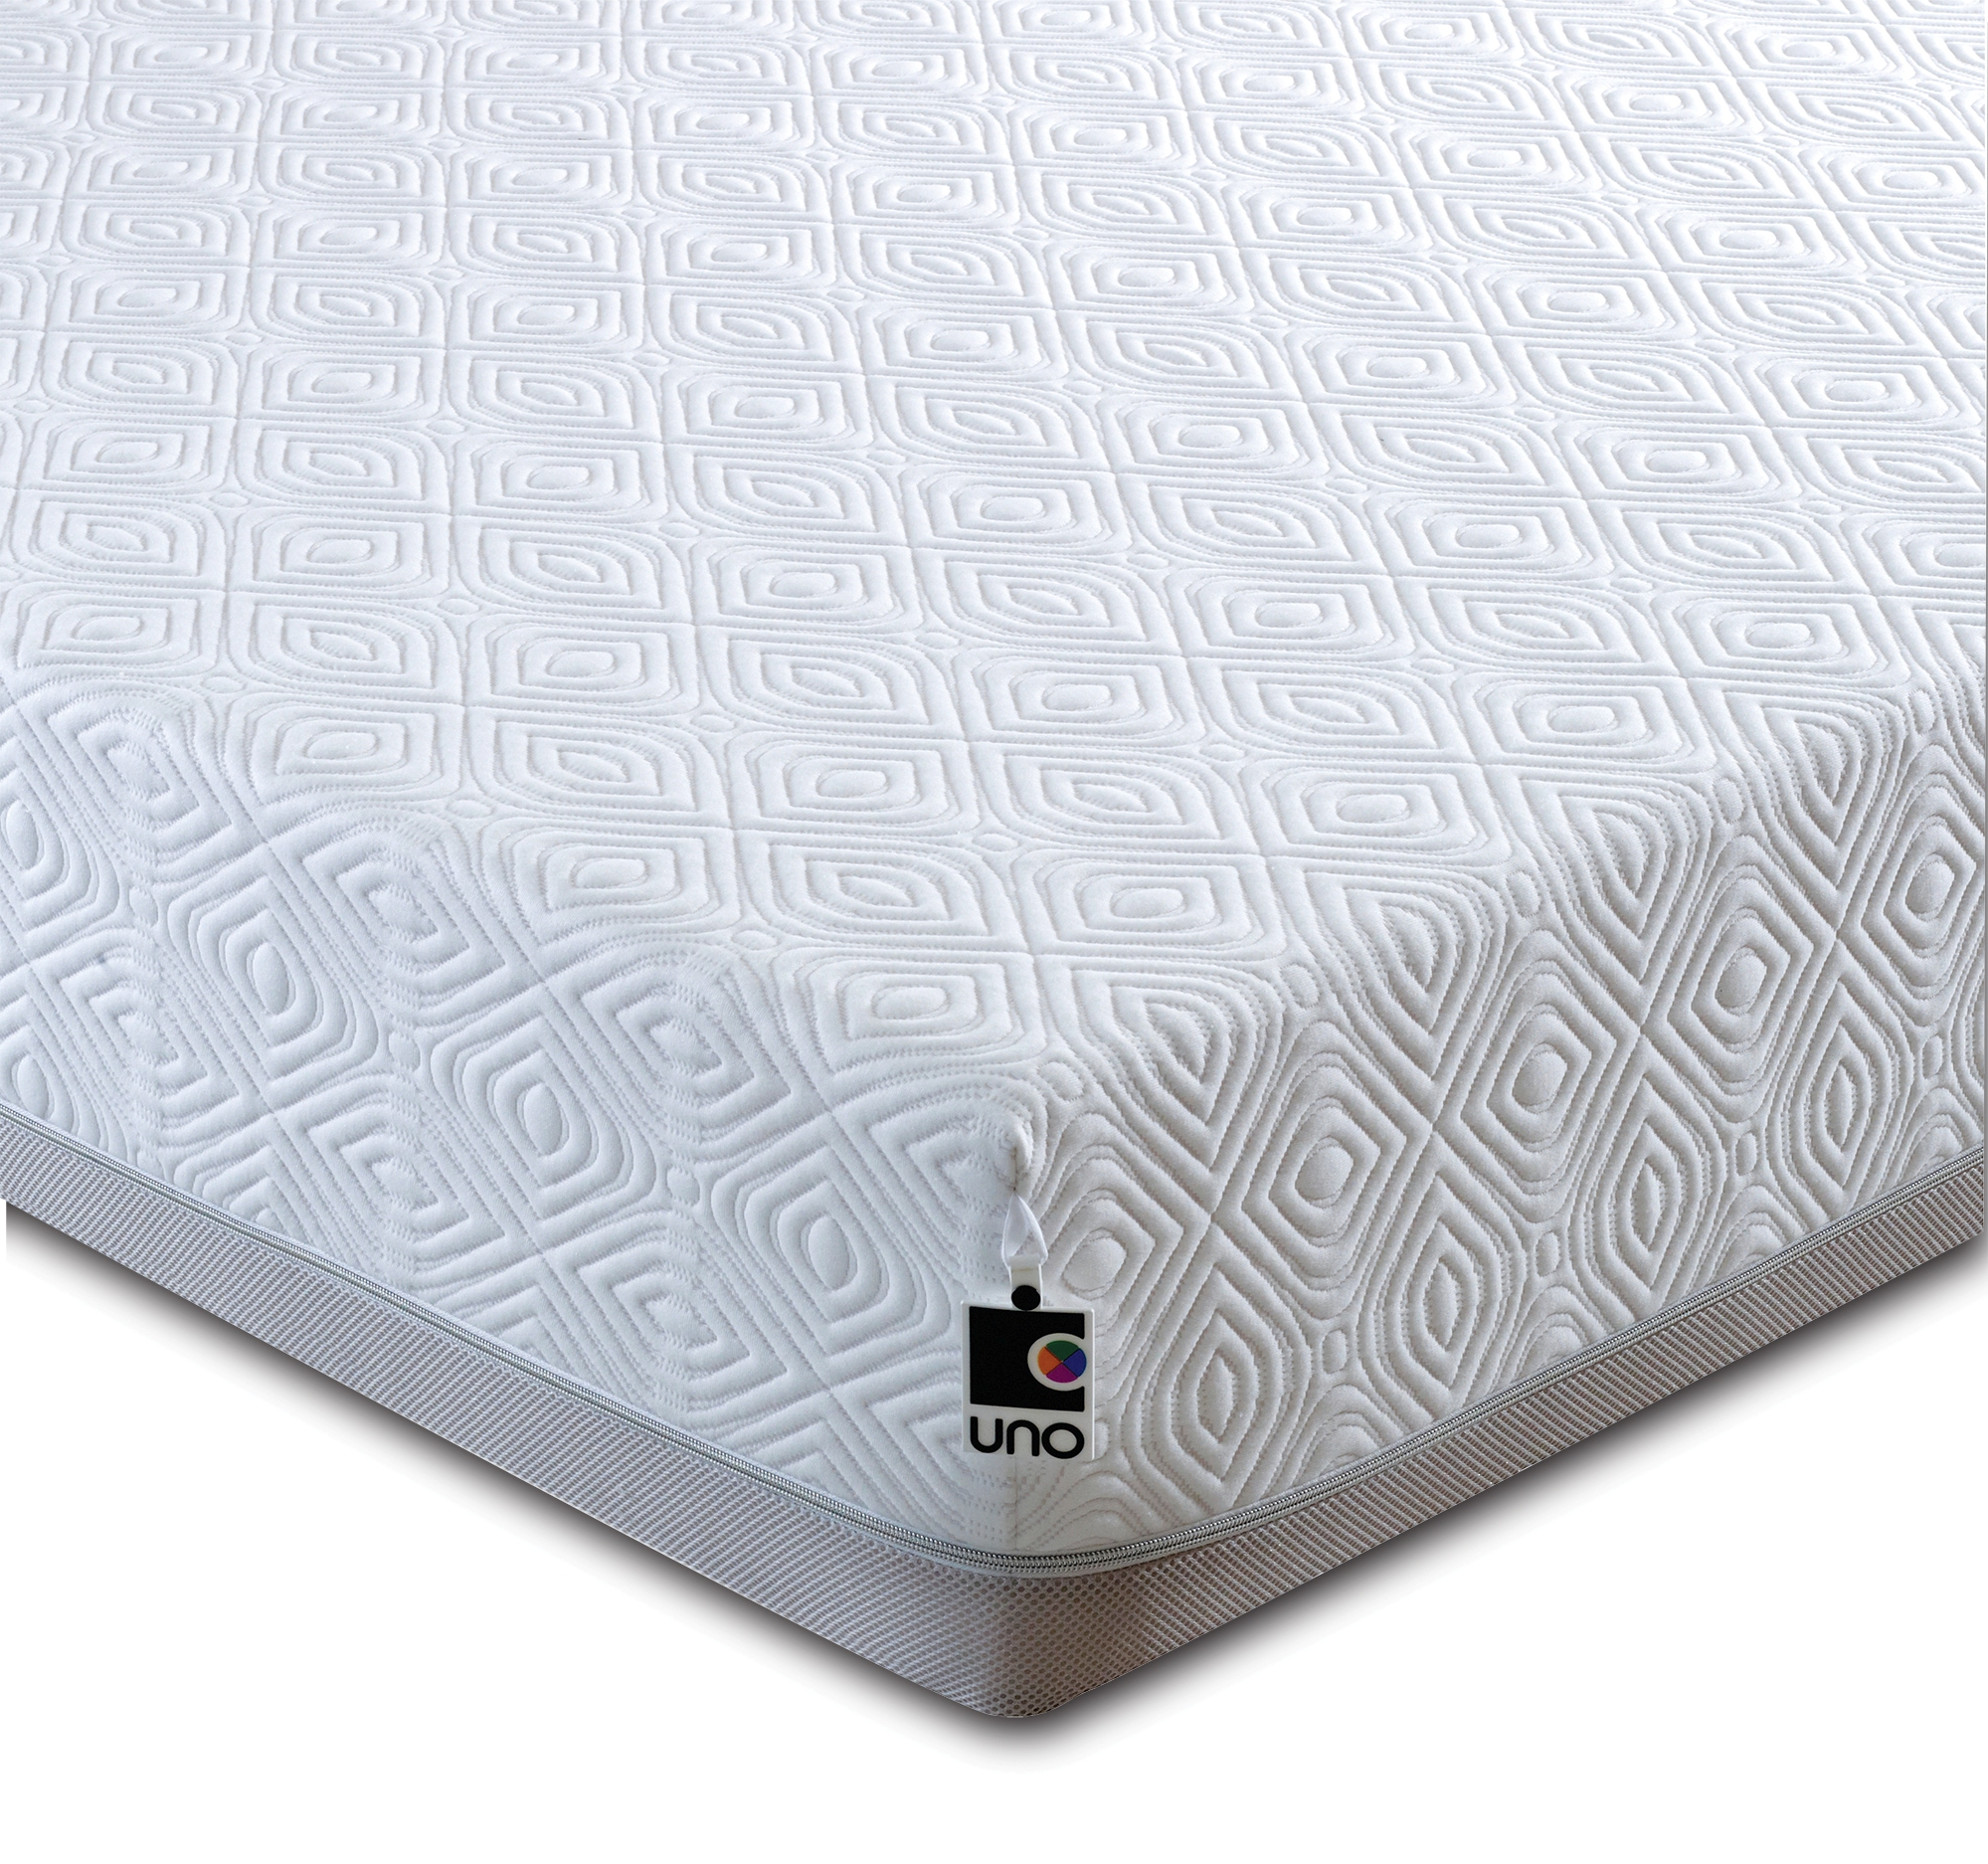 Uno single memory mattress